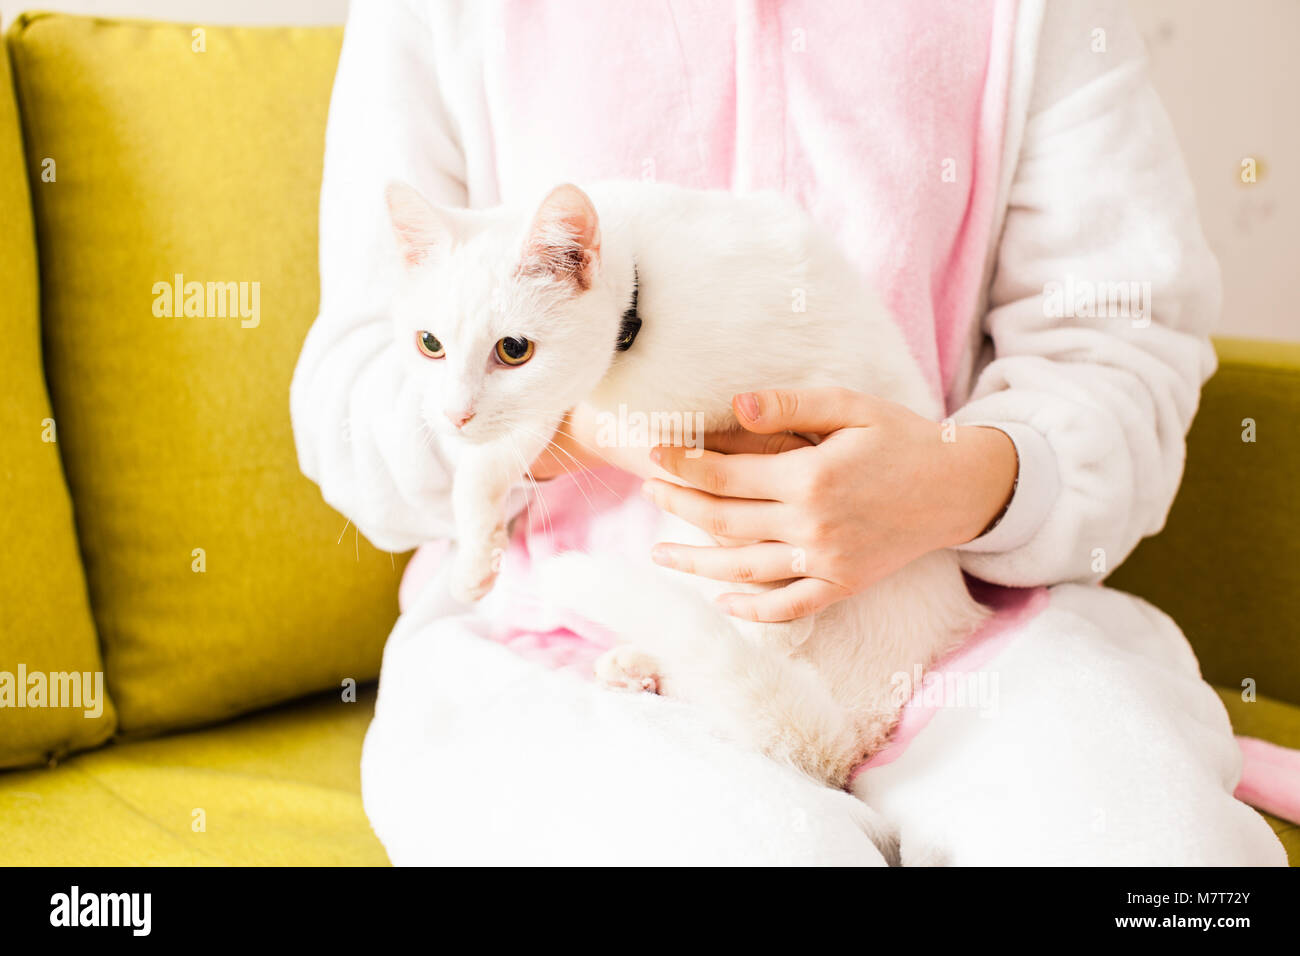 Yeux de chat sauvage Photo Stock